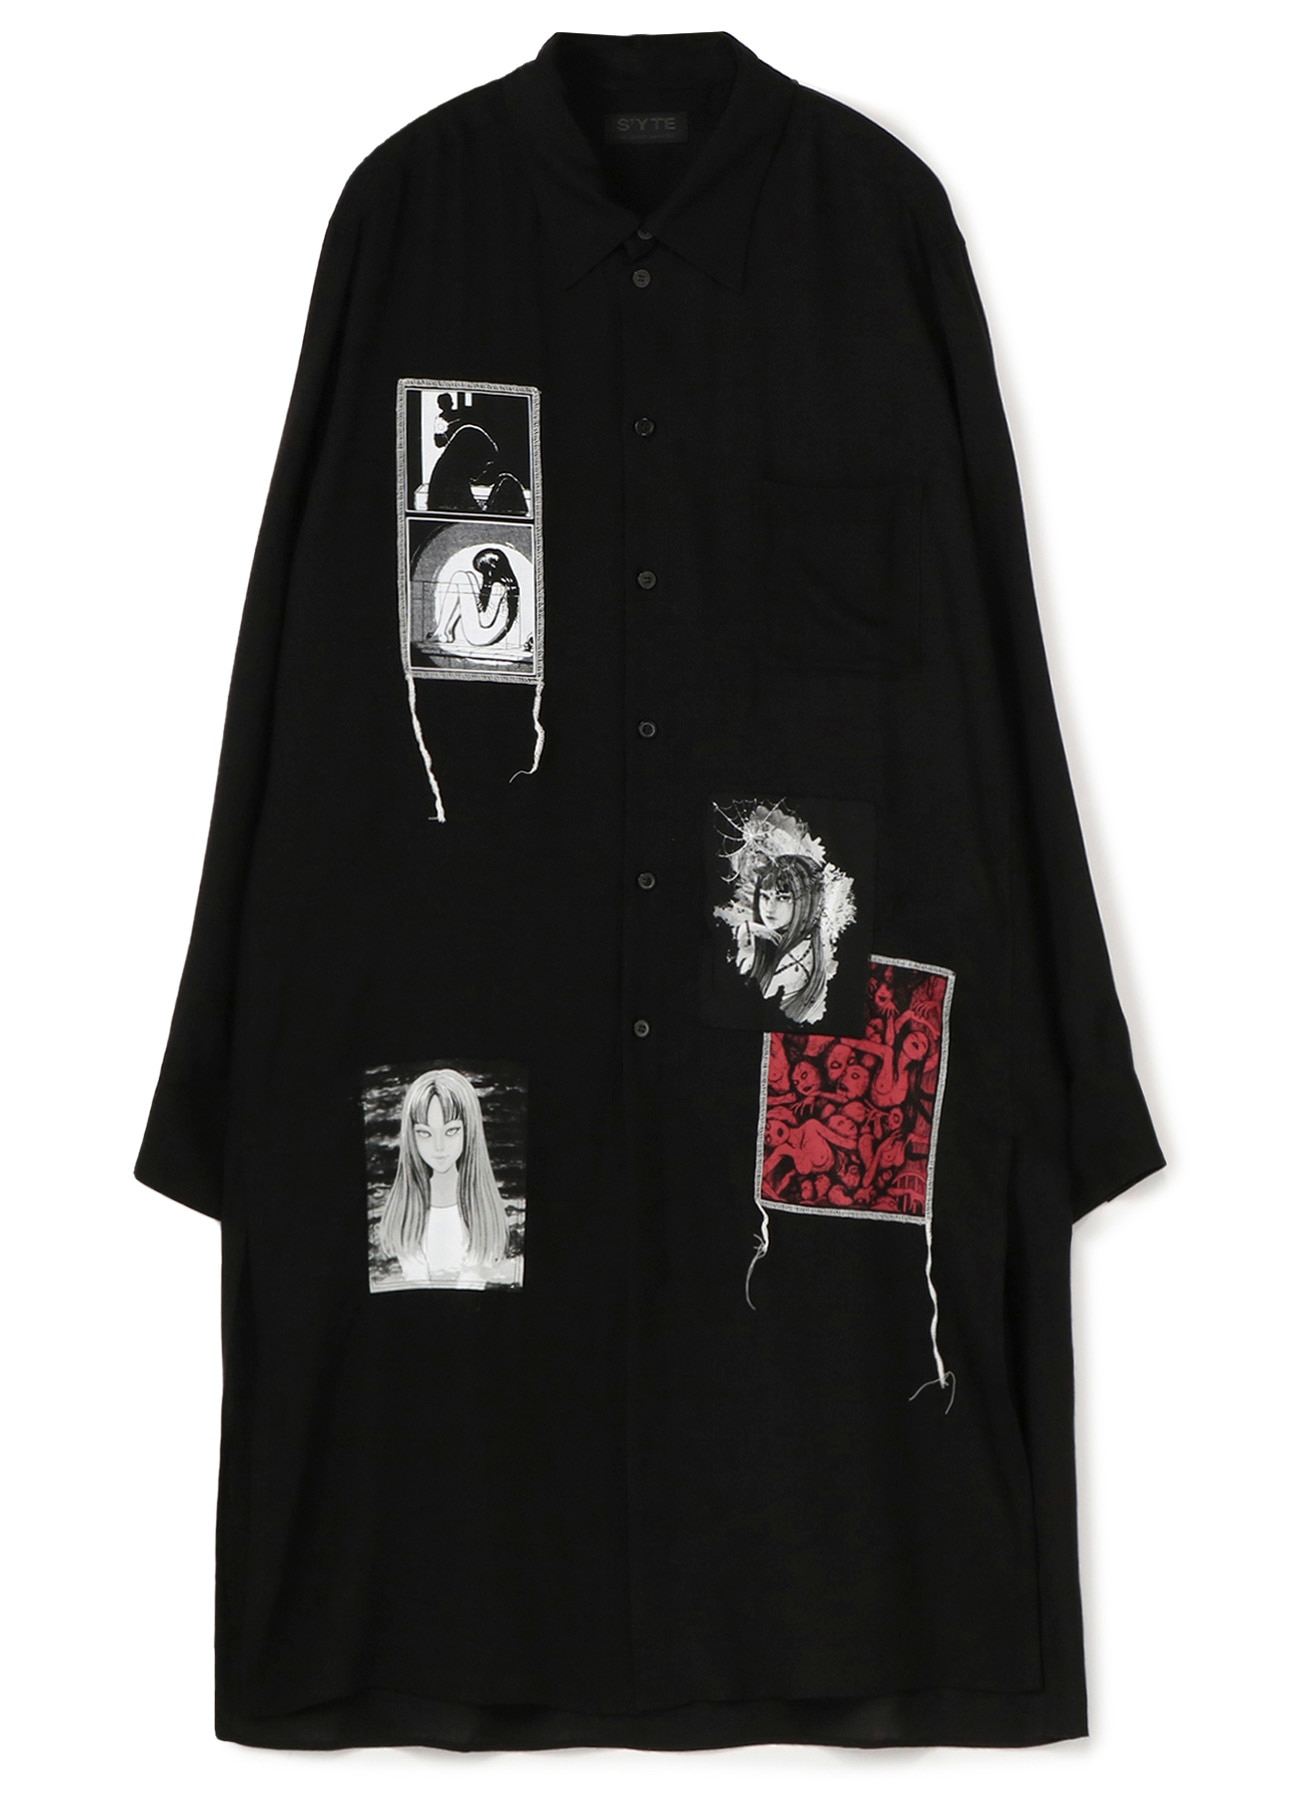 Tencel Viera JunjiIto 「Tomie」Omnibus Regular Printed Patch Long Shirt